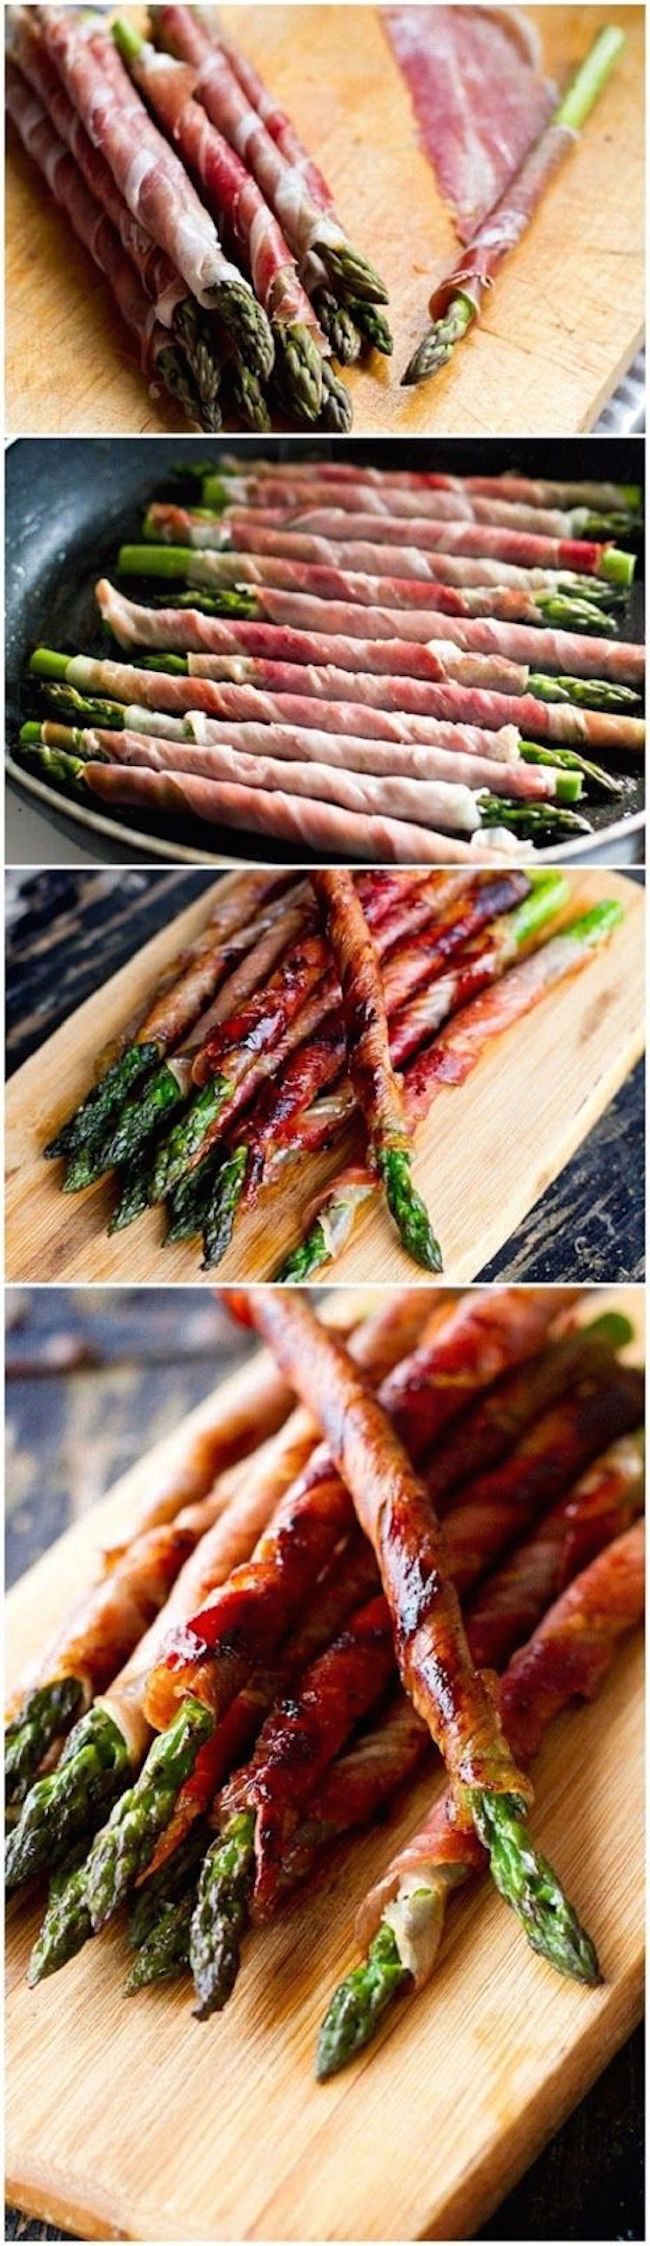 The 11 Best Super Bowl Food Ideas -Prosciutto Wrapped Asparagus